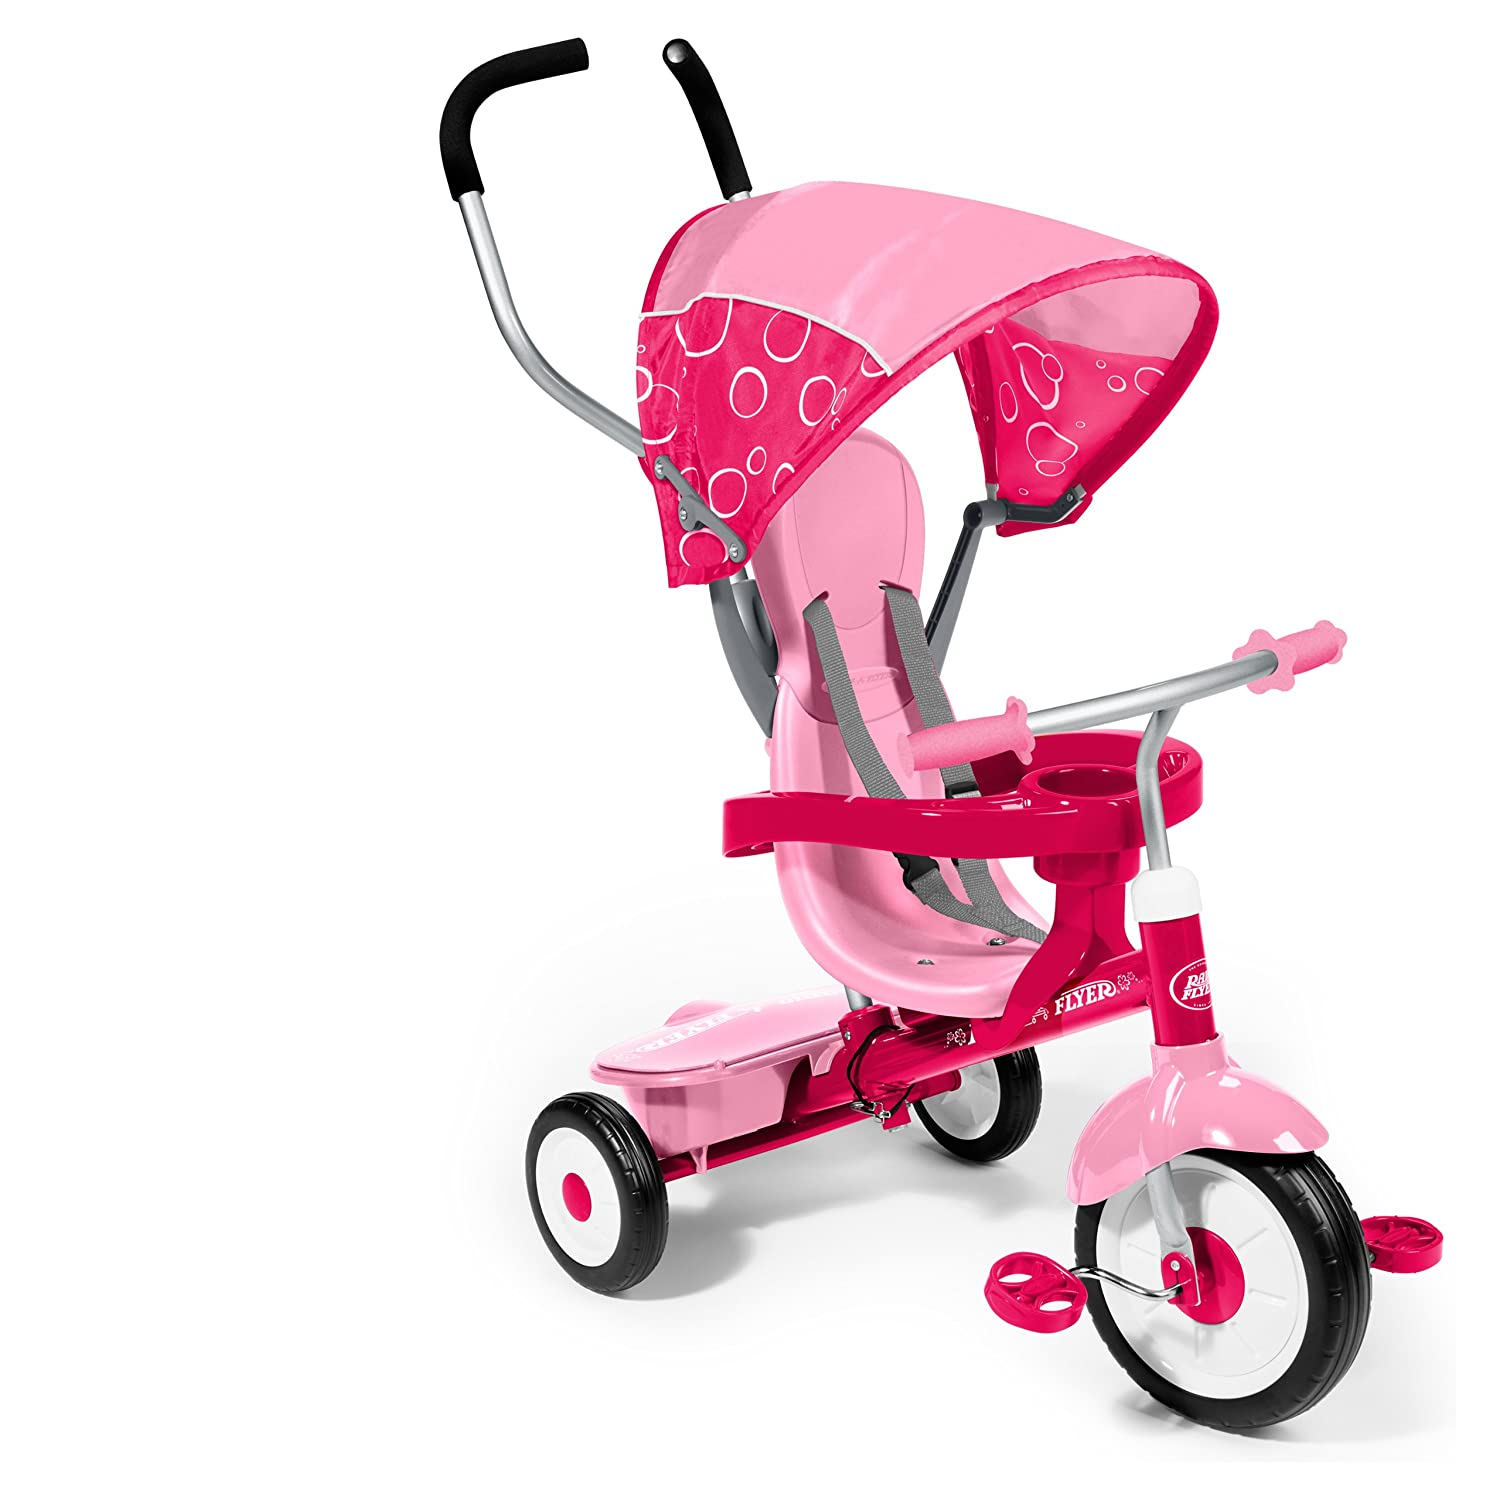 Radio Flyer 4-in-1 Trike, Pink